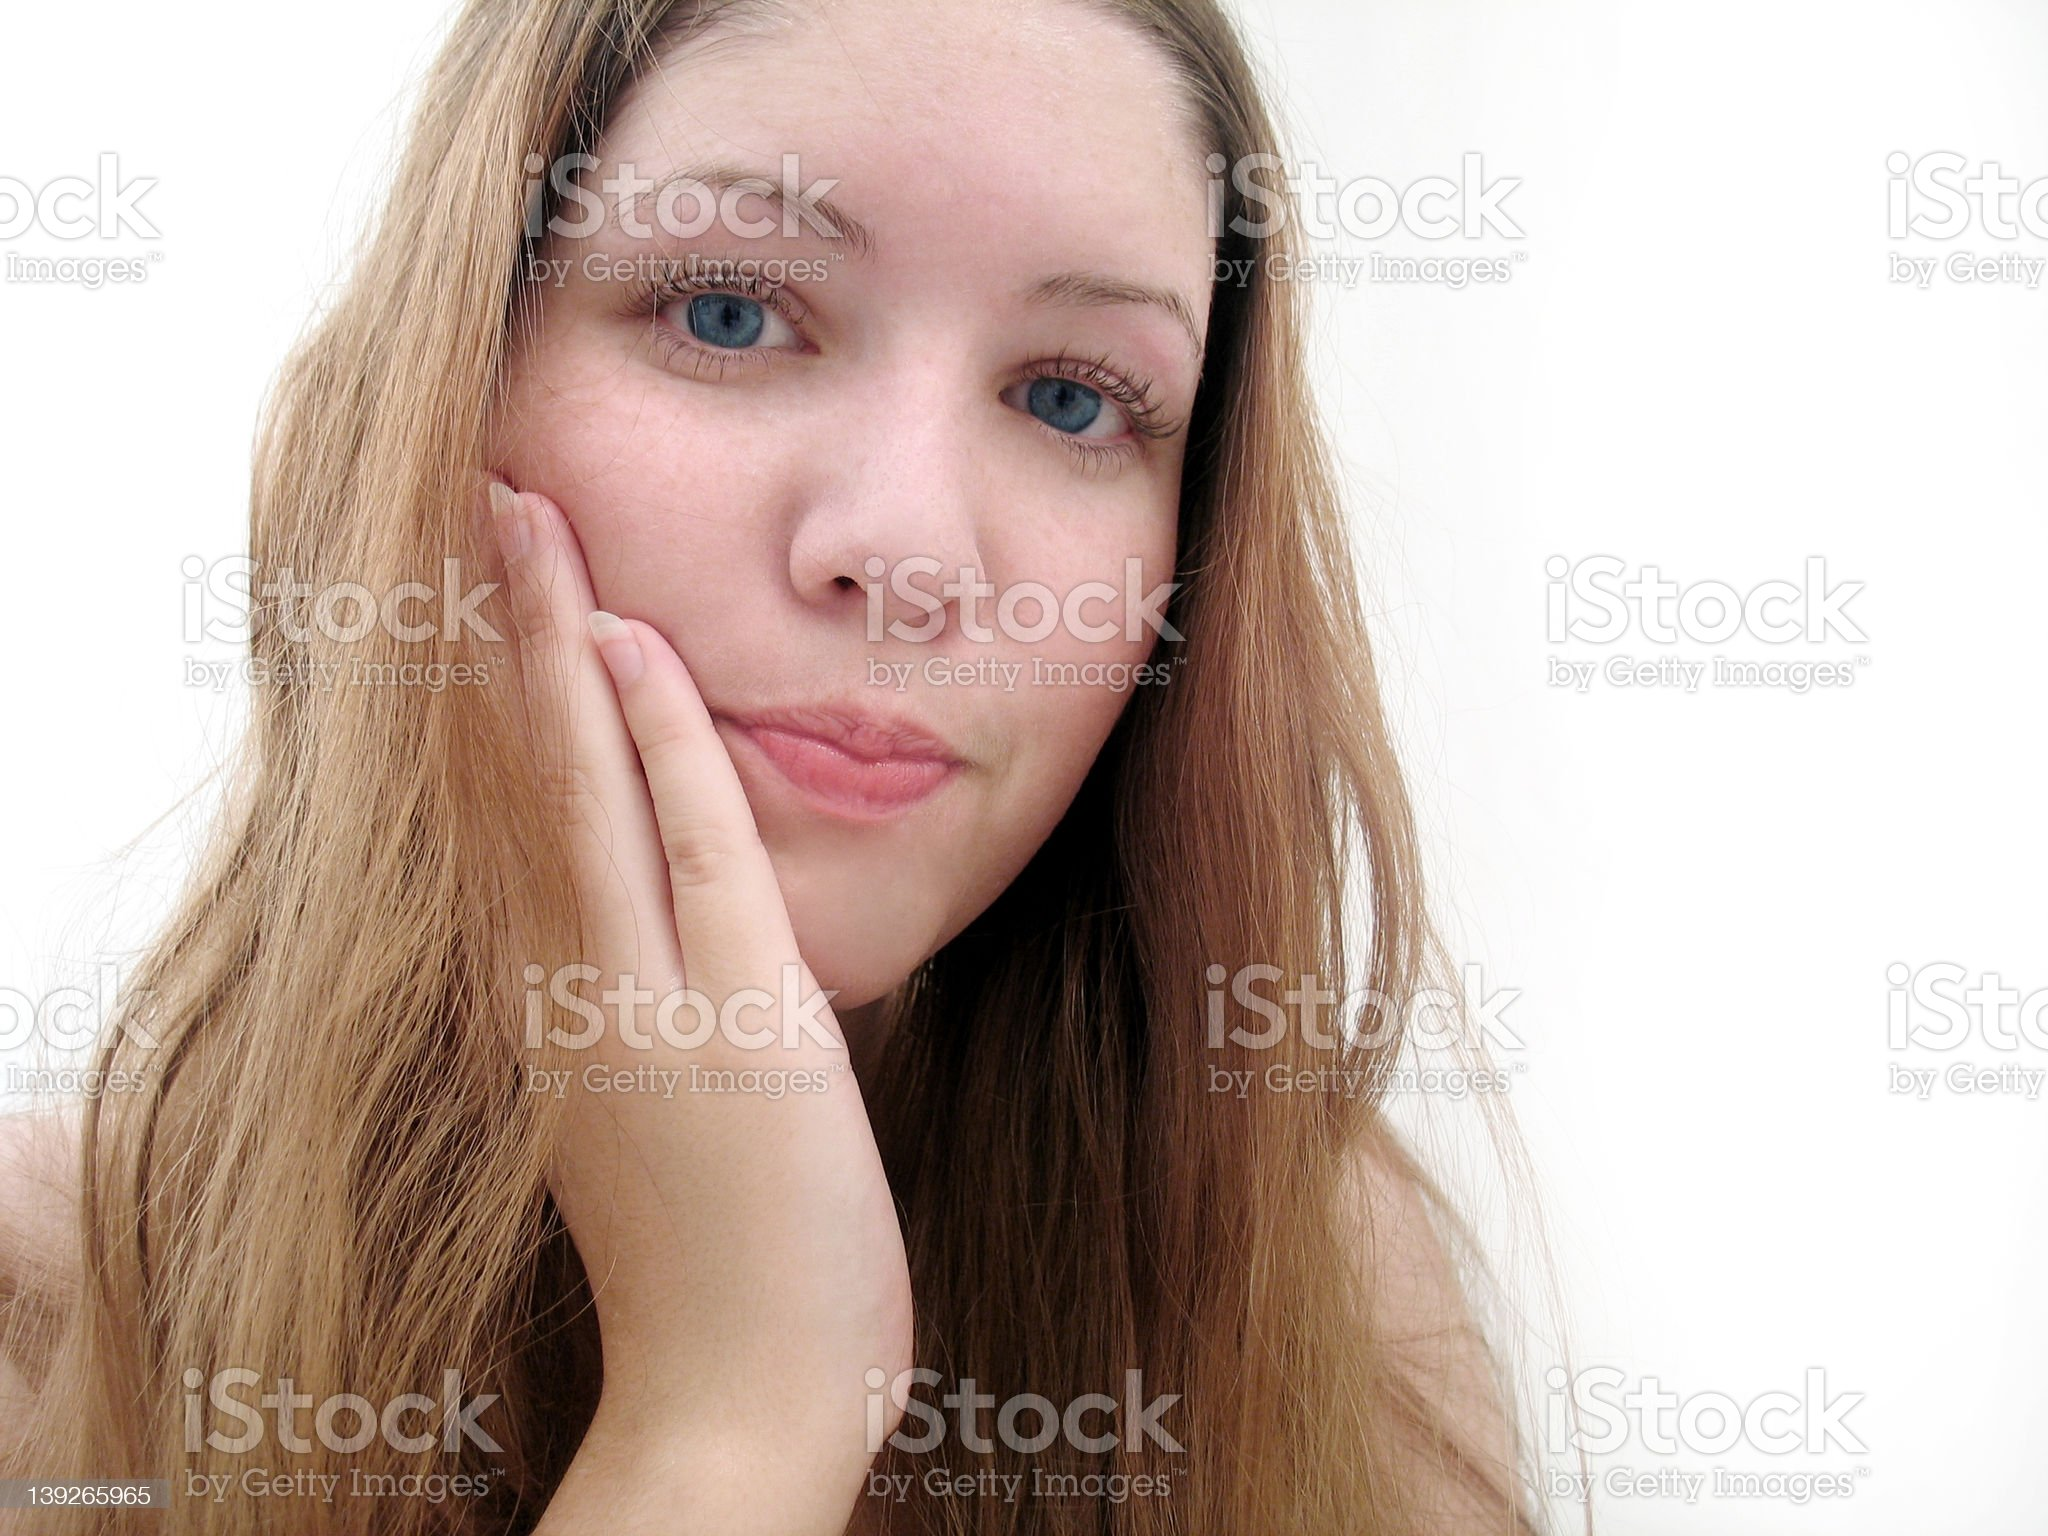 Clean face royalty-free stock photo